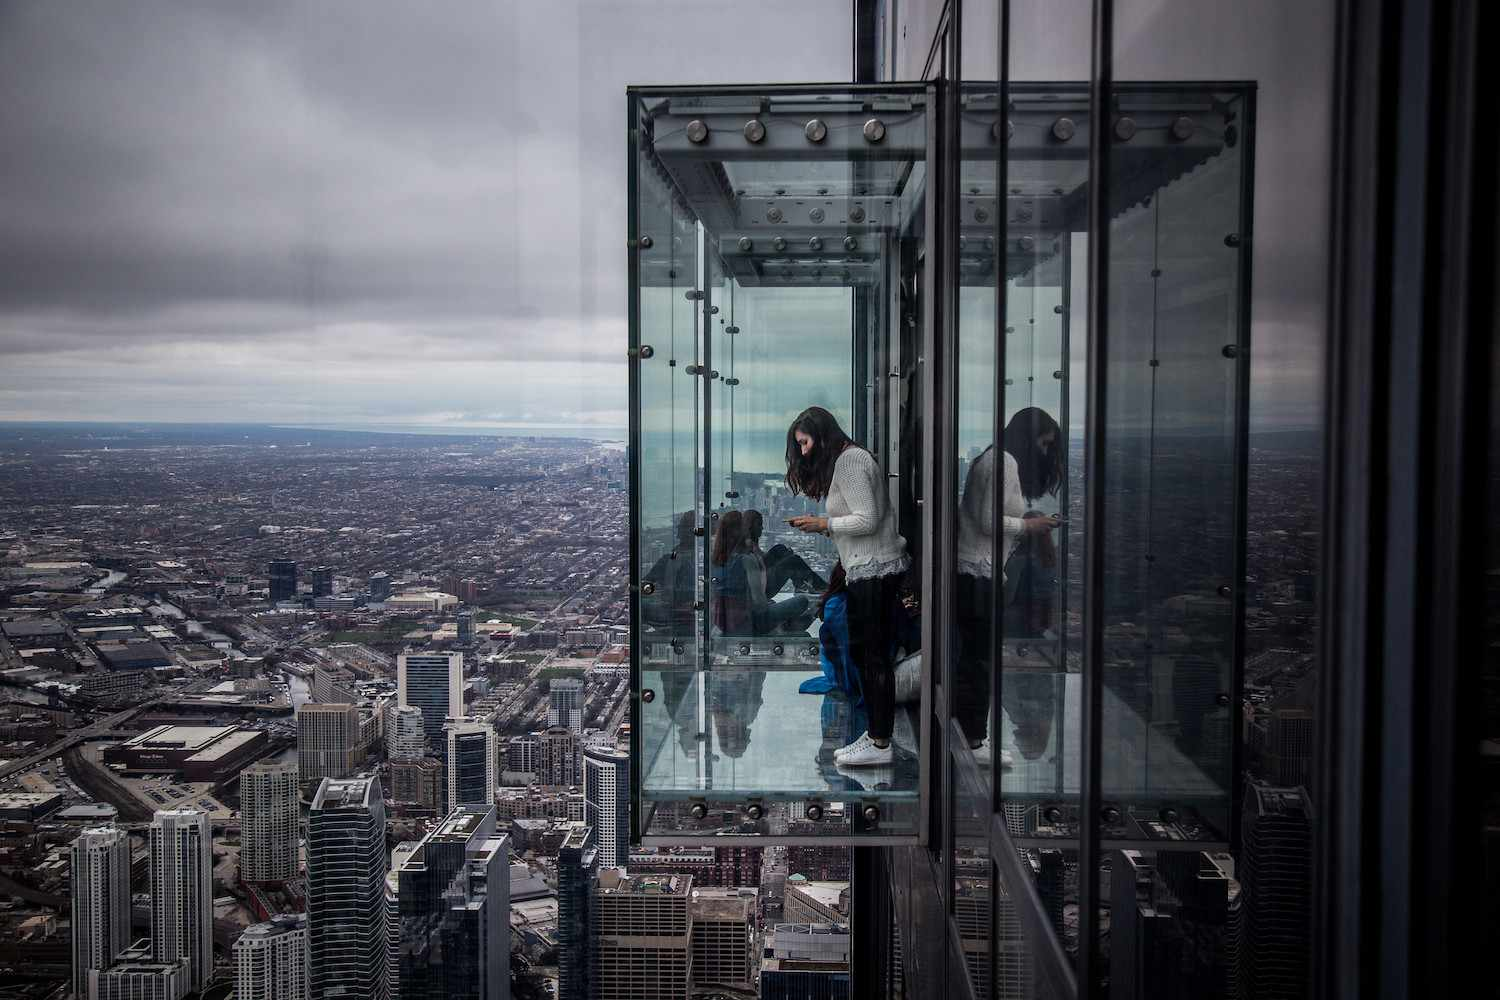 A woman looks down onto the Chicago streets below from The Ledge at Willis Tower